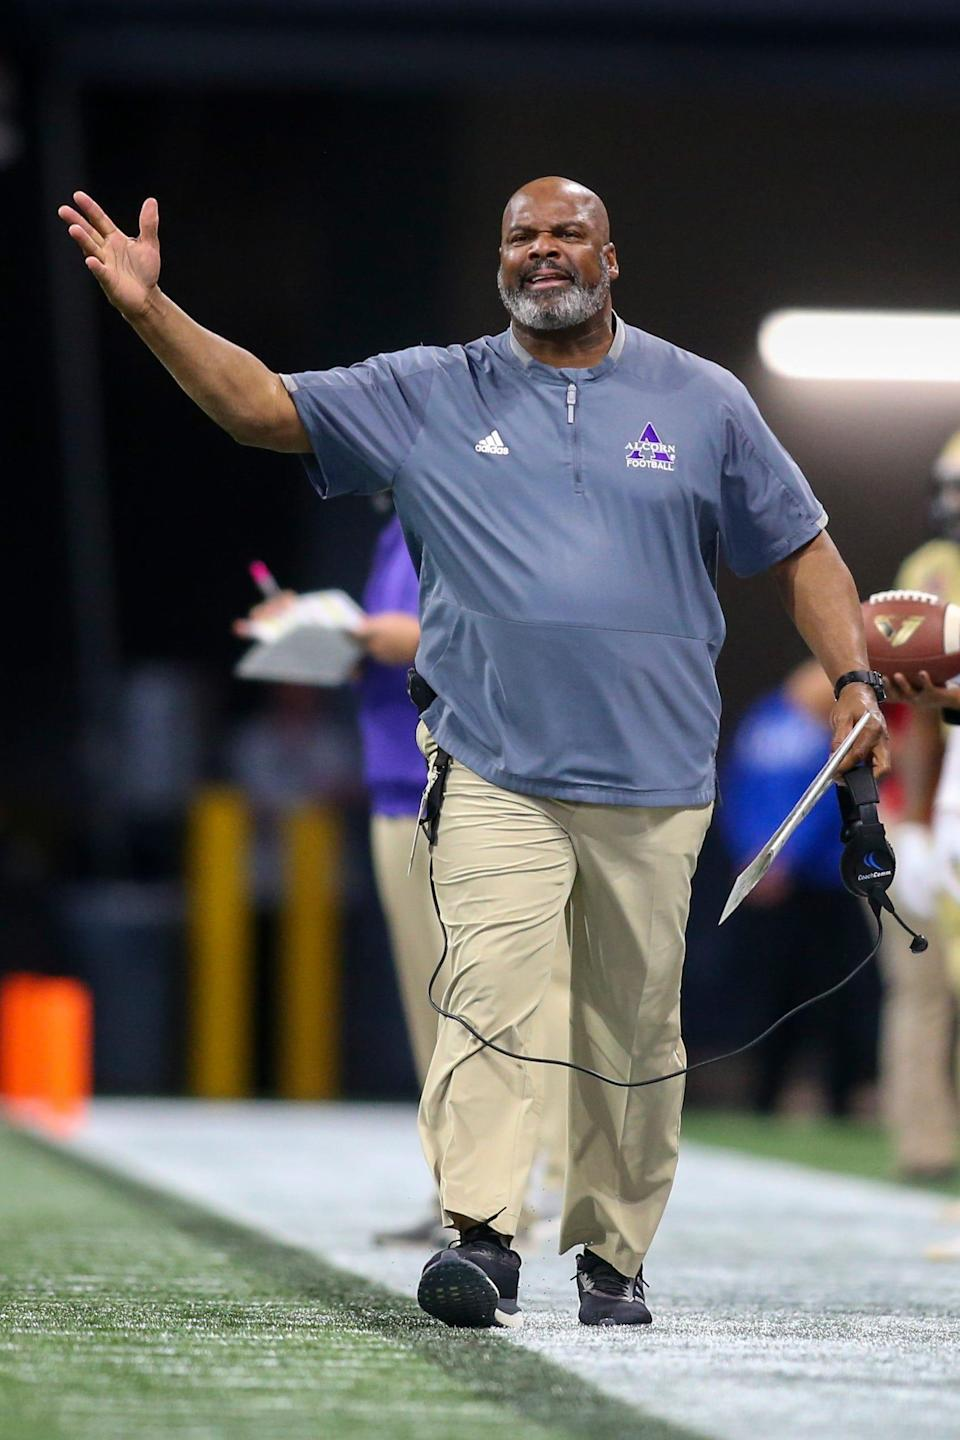 Alcorn State Braves head coach Fred McNair in 2019. Alcorn State has started its season with a 1-1 record.